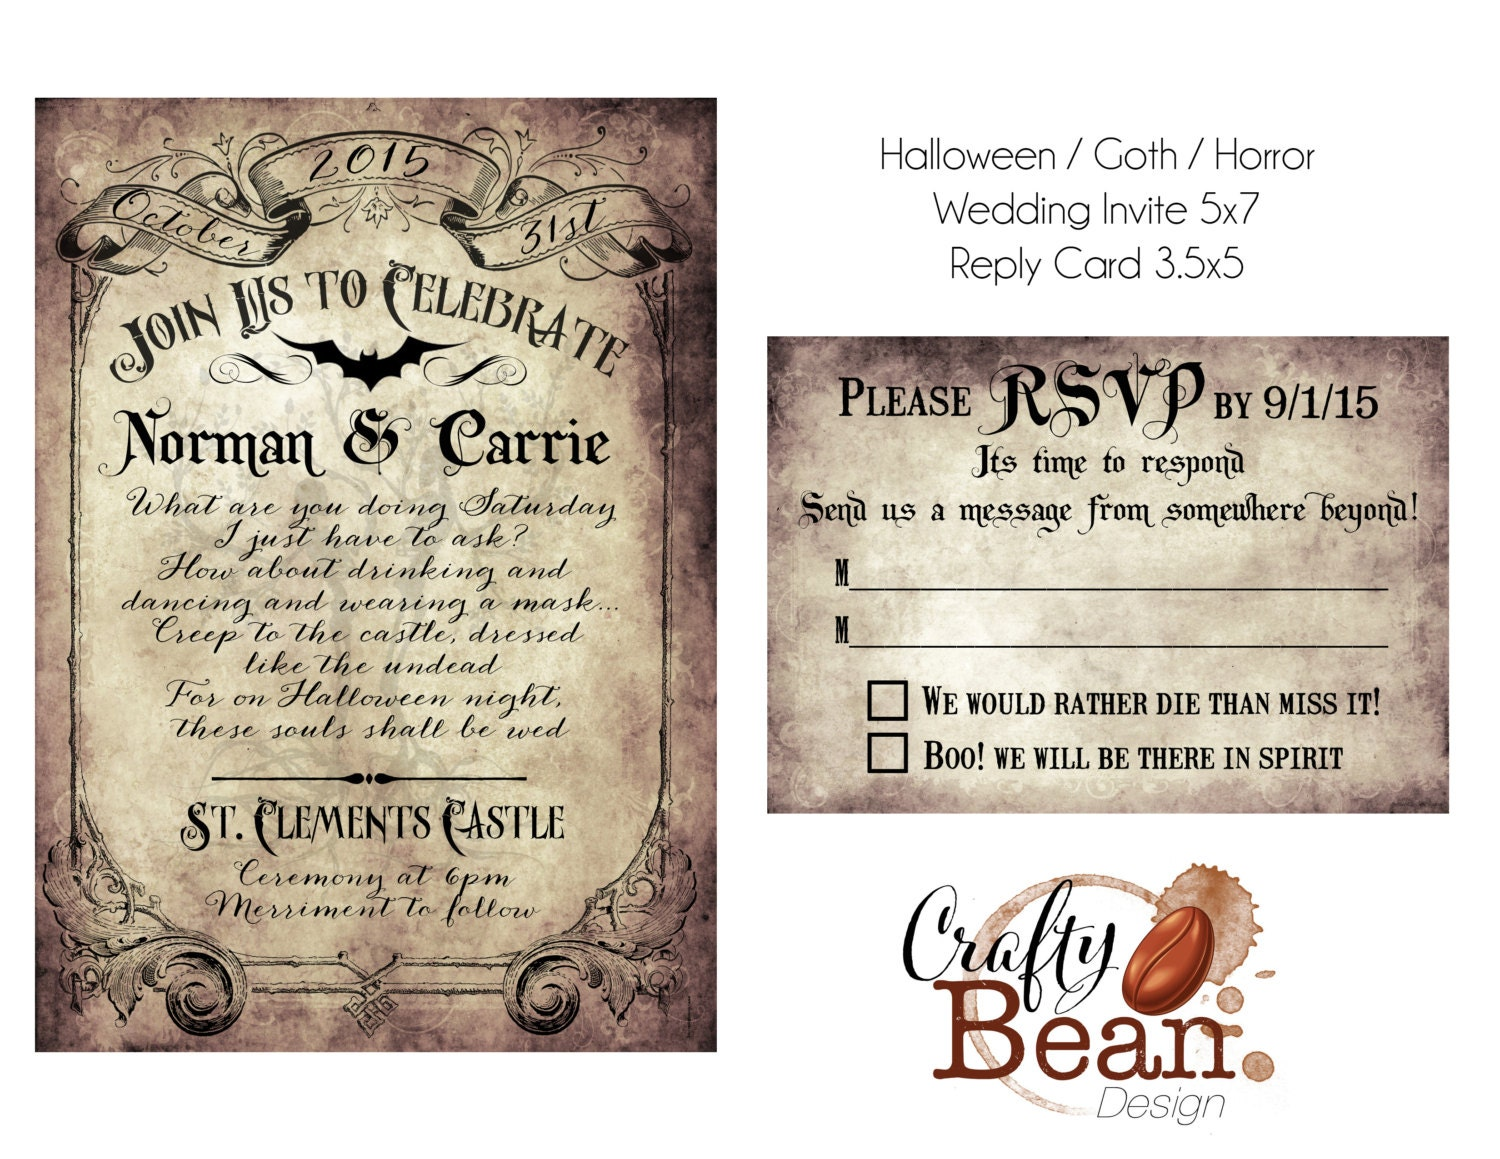 Gothic Wedding Invitations Uk – guitarreviews.co